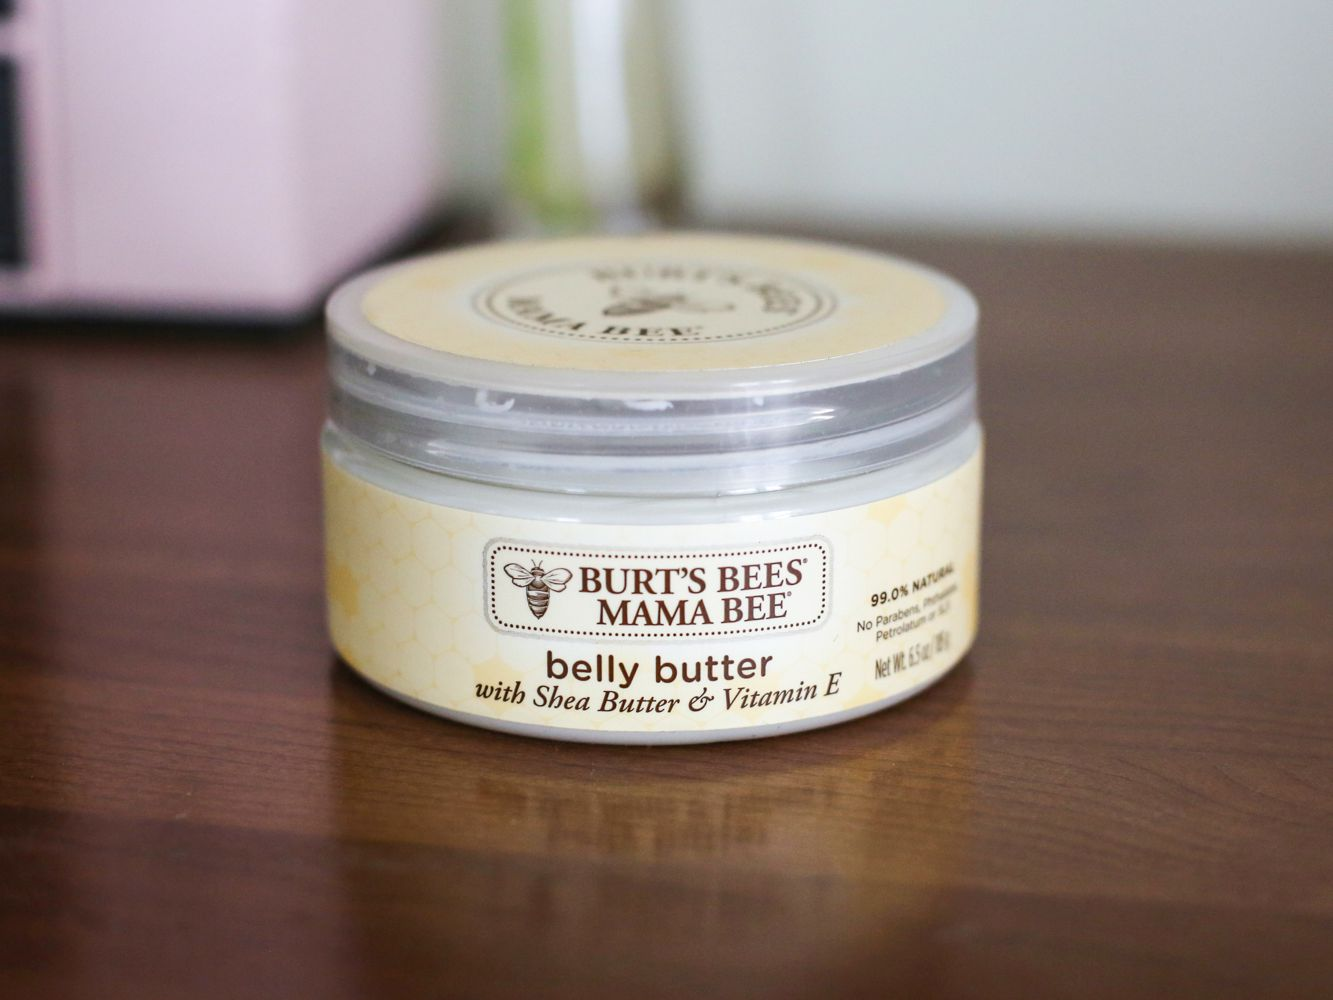 Burt S Bees Mama Bee Belly Butter Review Softens Skin Feels Great